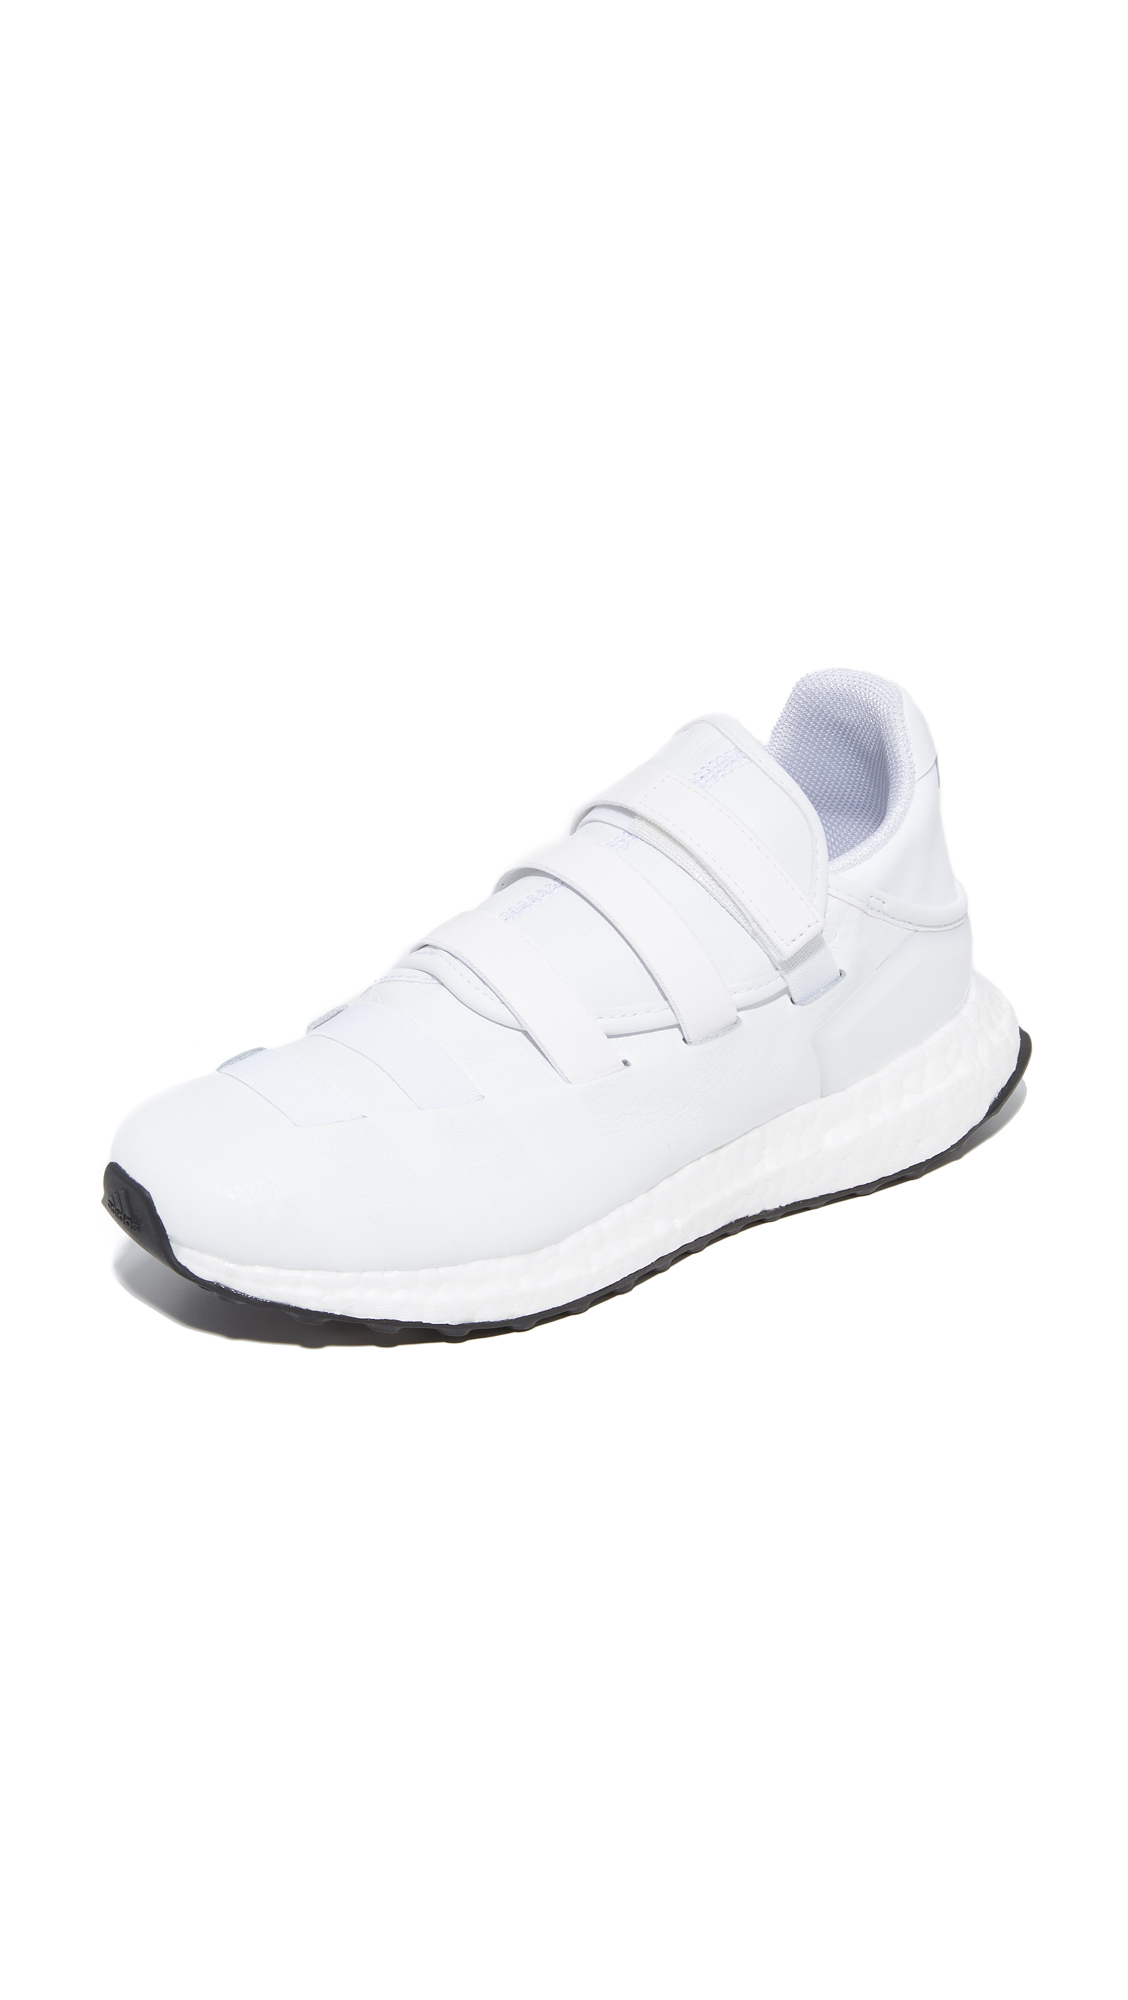 Y-3 Y-3 Zazu Sneakers - White/Sheet Grey